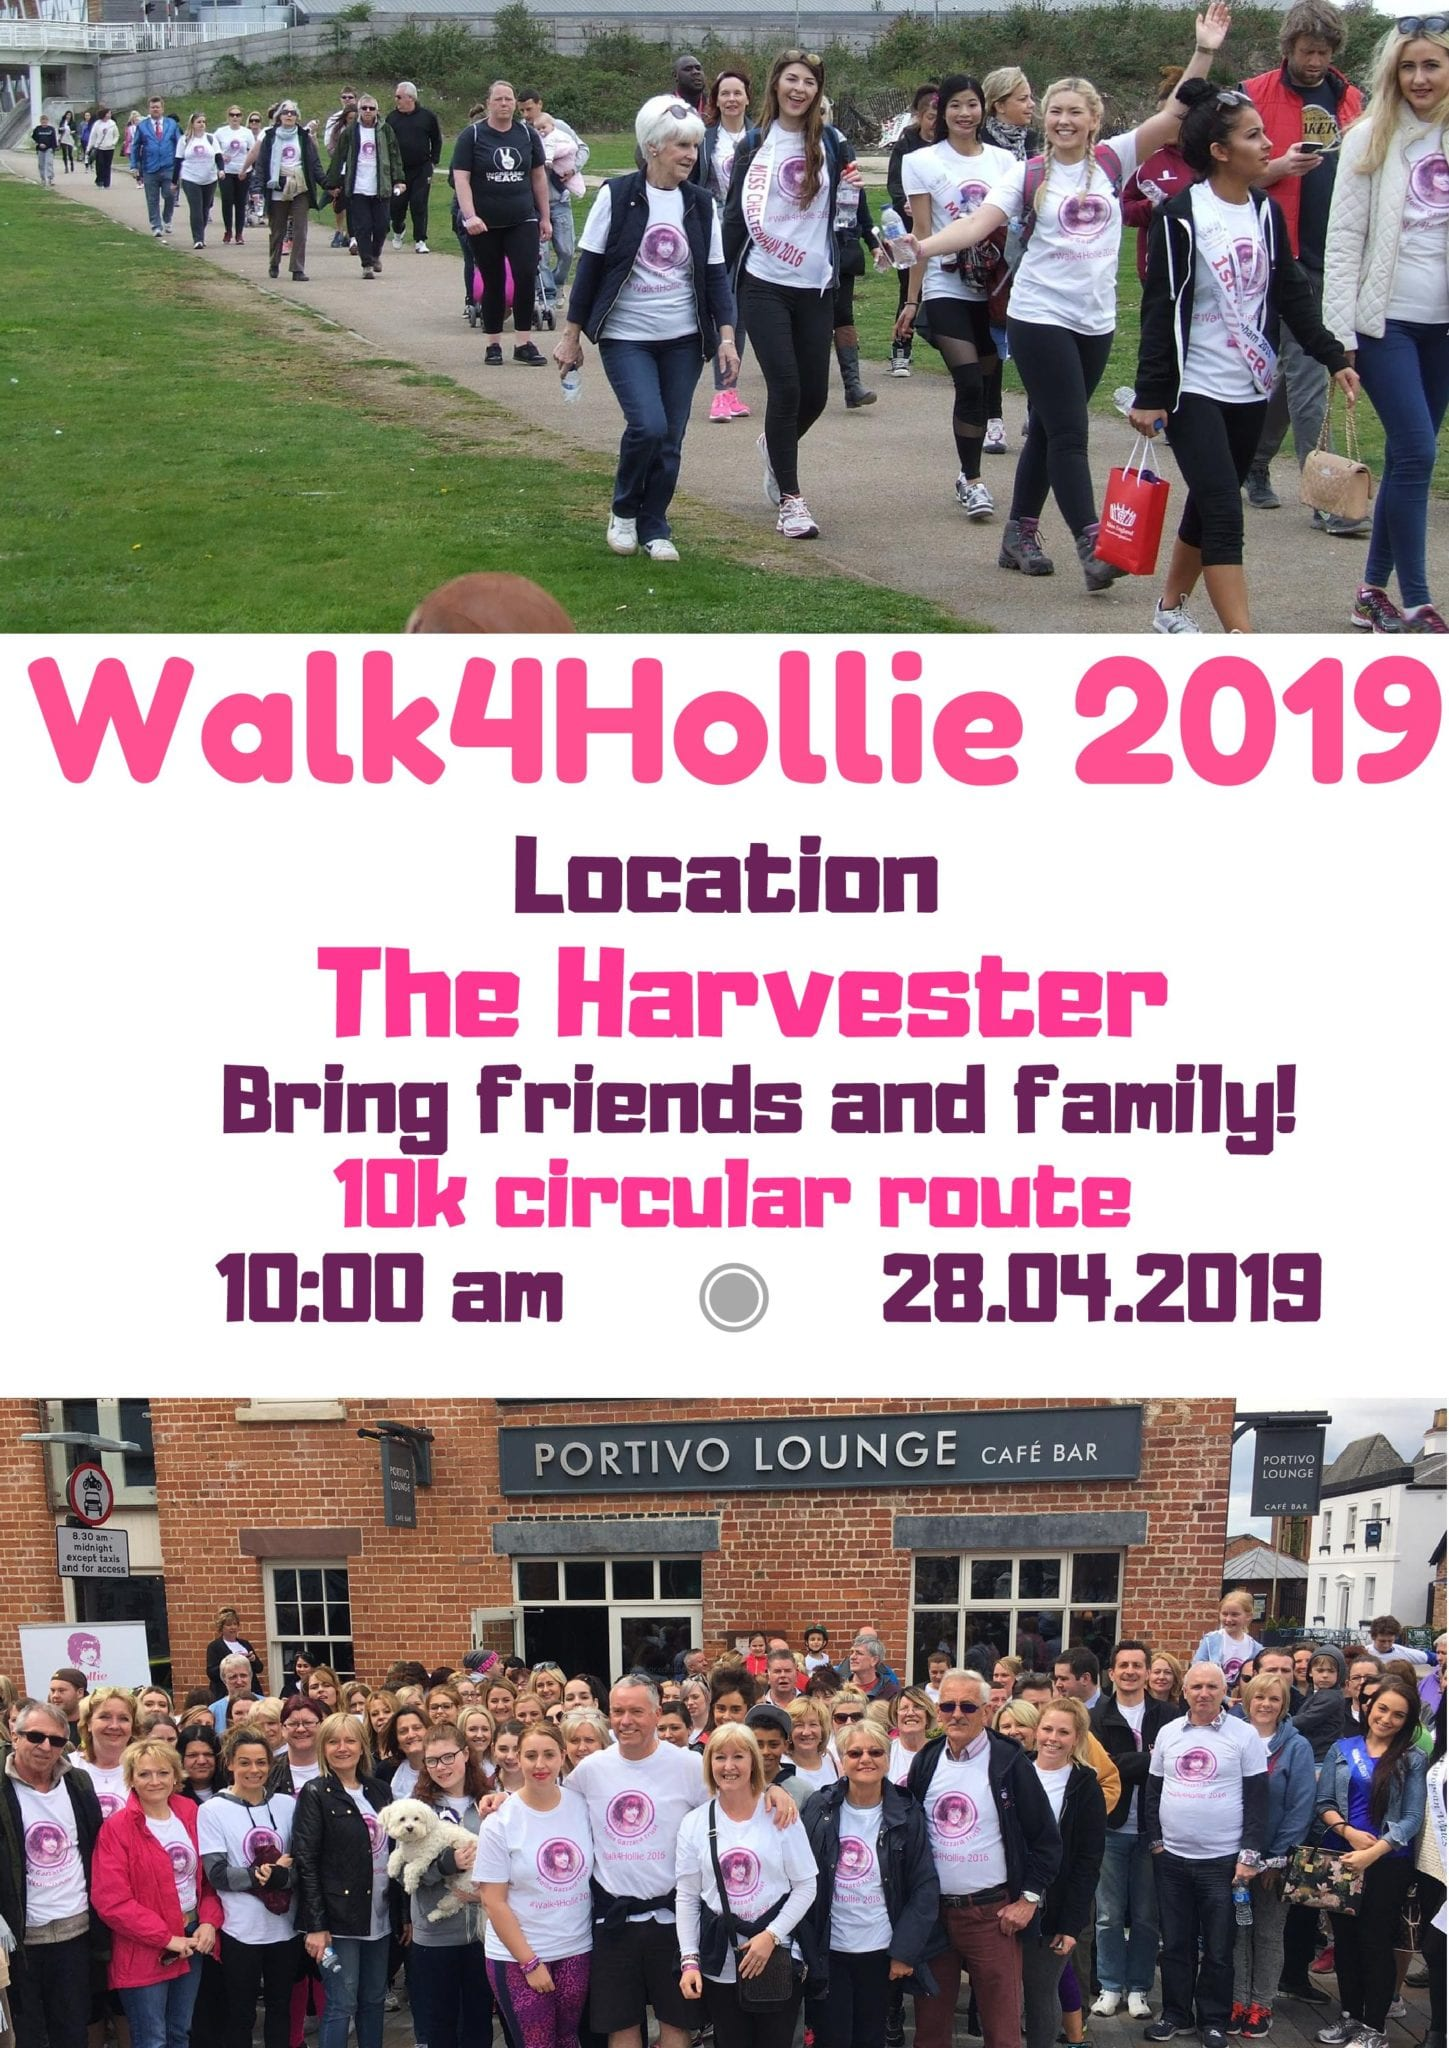 Walk4Hollie 2019